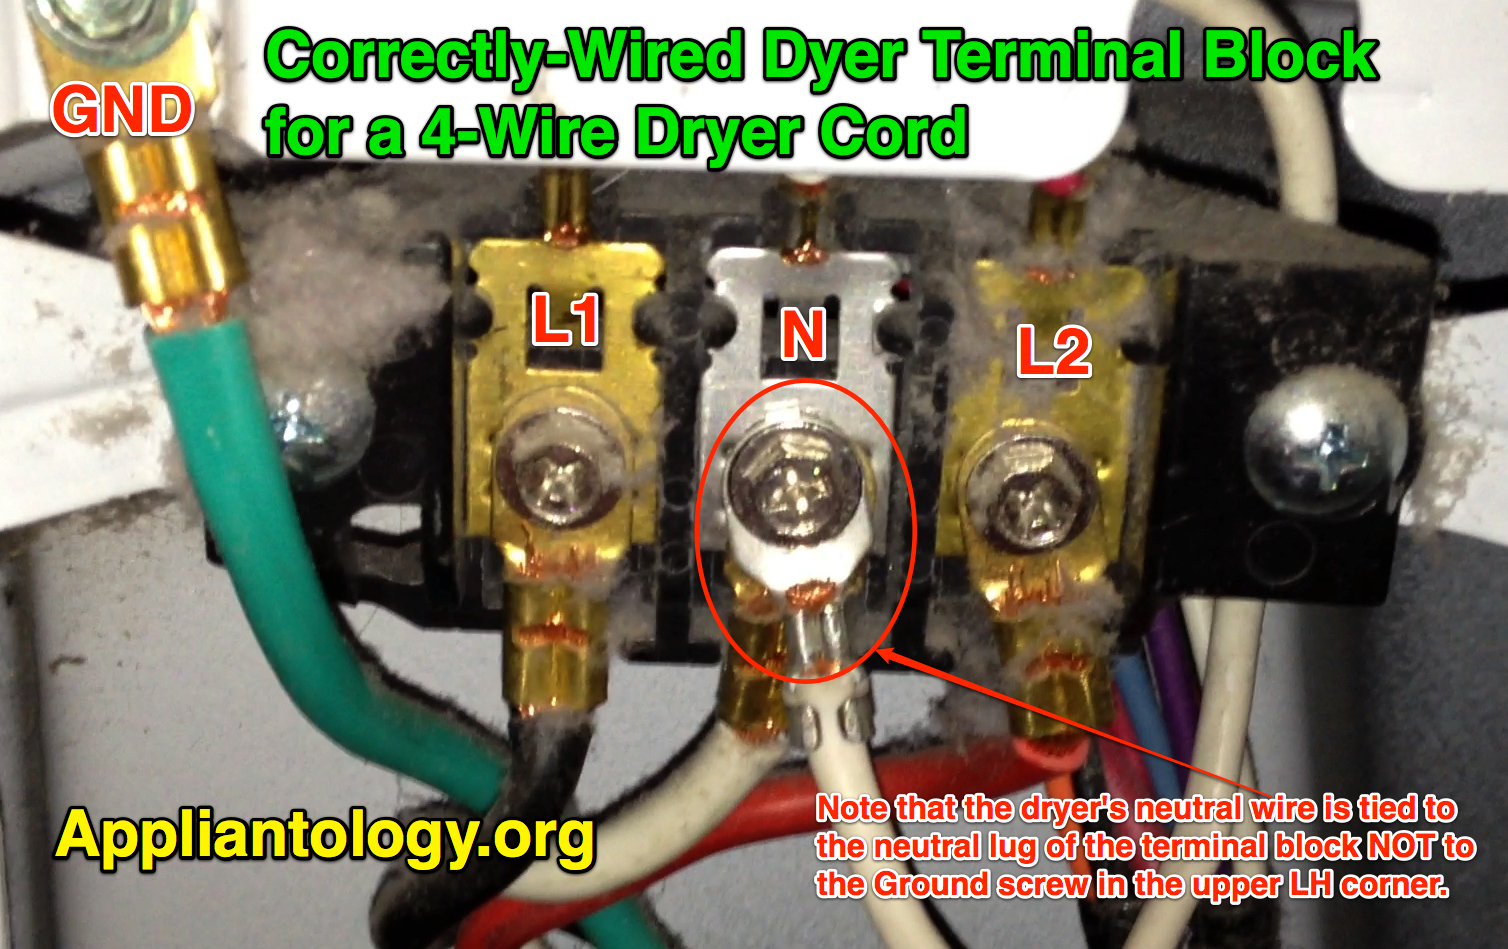 bination Switch Wiring Diagram 280zx besides Gas Pipe Specifications further 779 Correctly Wired Dyer Terminal Block For A 4 Wire Dryer Cord besides Webasto Heater Air Top 2000 Stc 12v Kit Single Outlet Marine Kit P1800 in addition Controlling A Gfci Outlet With A Switch. on repair electrical outlet